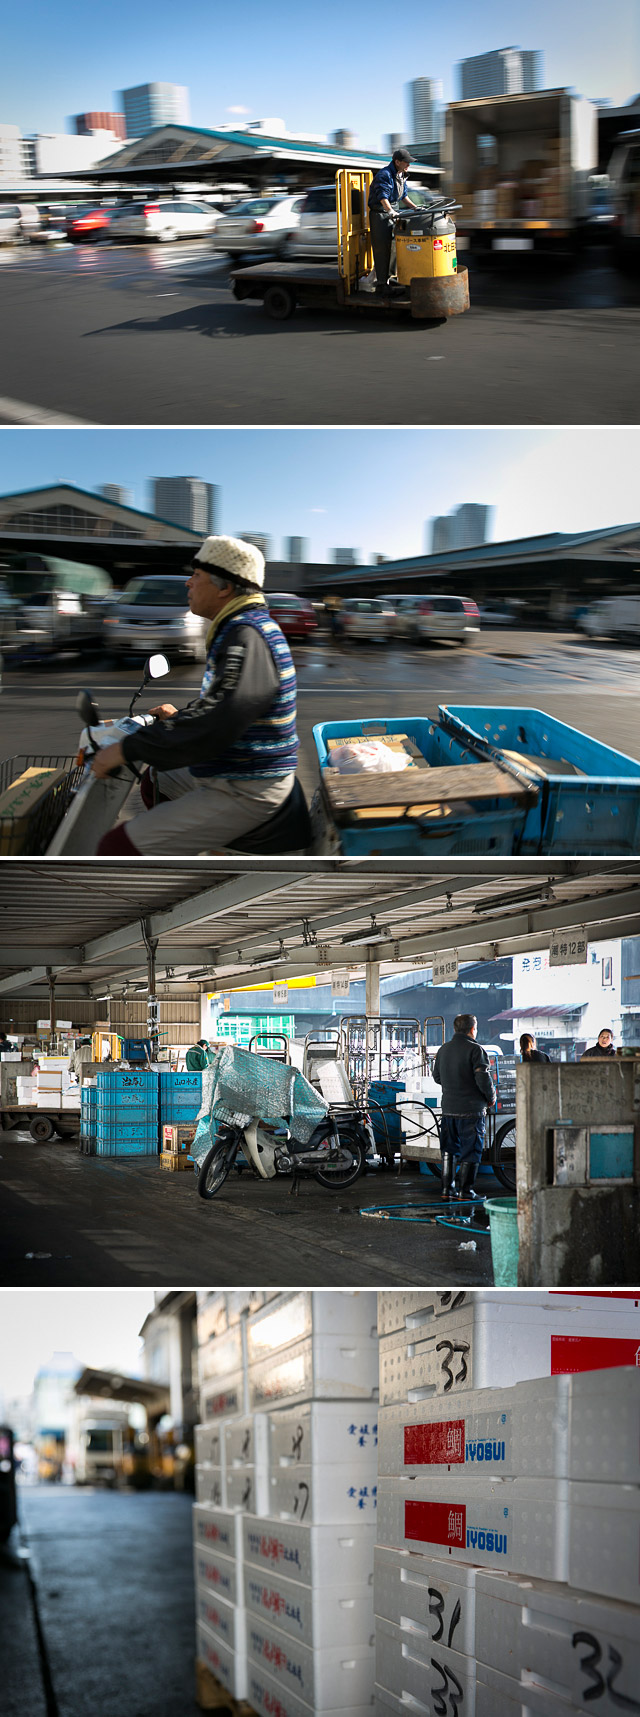 Workers at Tsukiji market